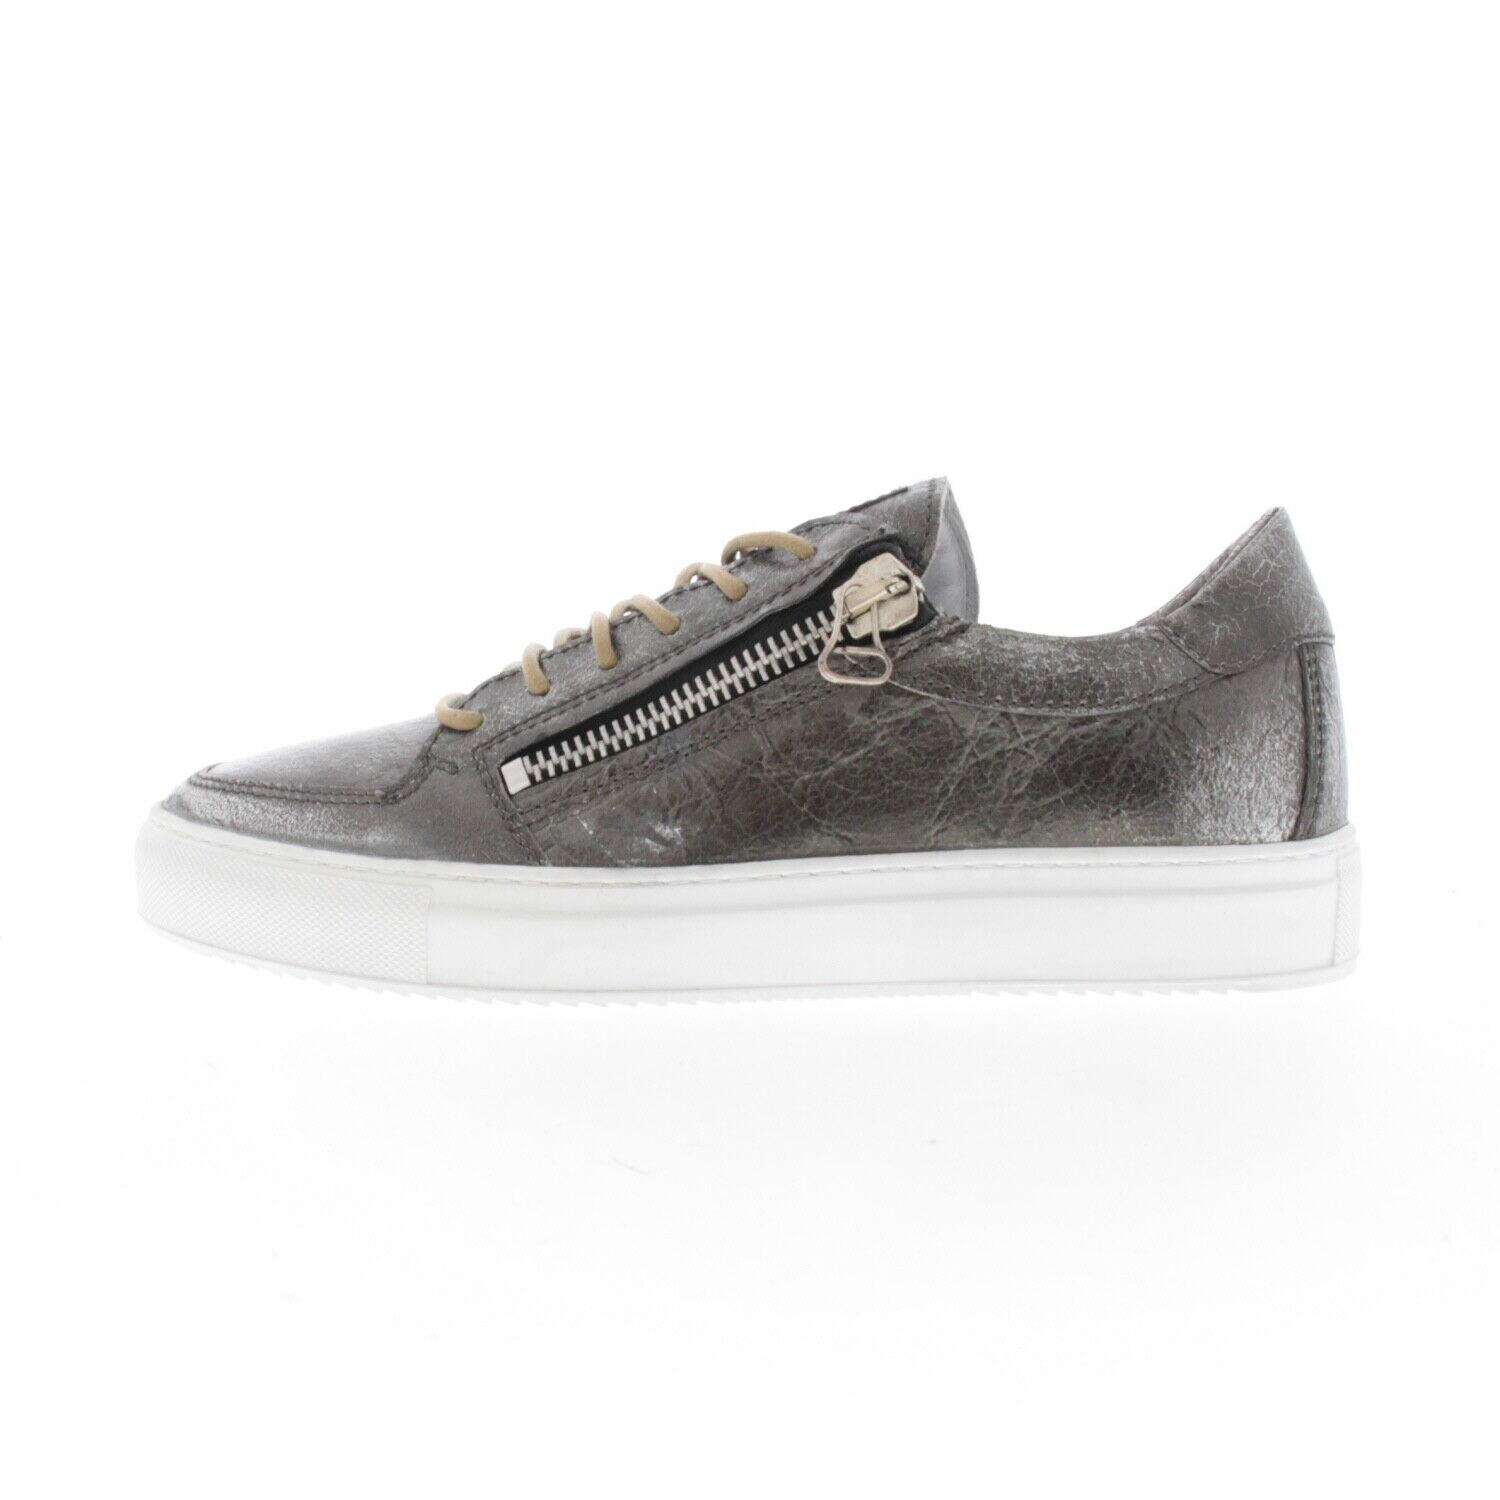 Mjus Chaussures Femme Taille 41 Argent Baskets 360101